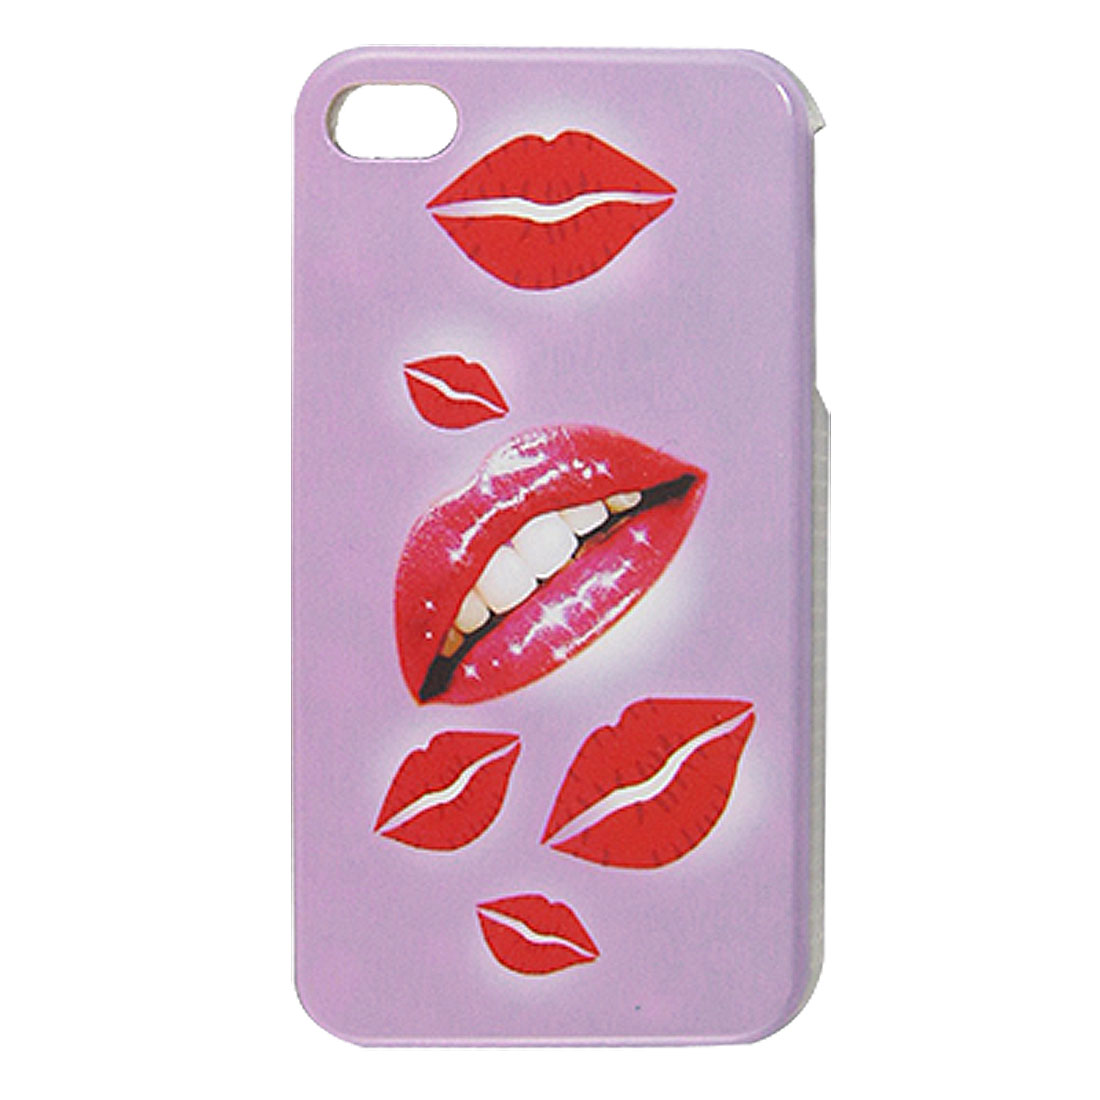 Lilac Red IMD Lip Print Hard Plastic Back Case for iPhone 4 4G 4S